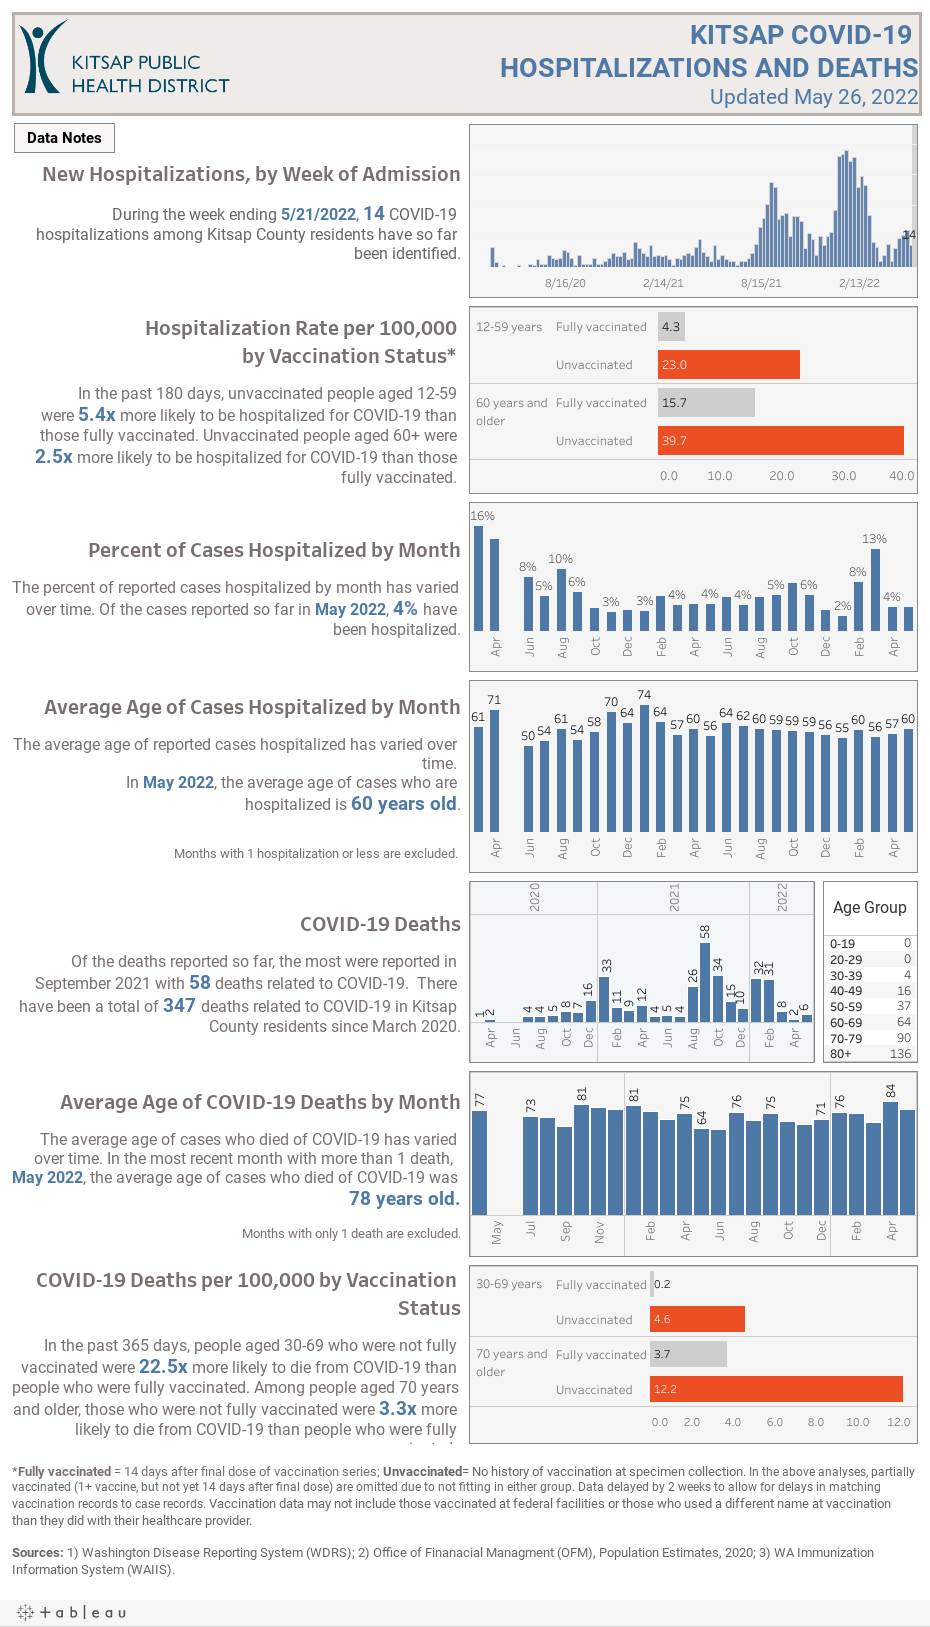 Hospitalizations/Deaths